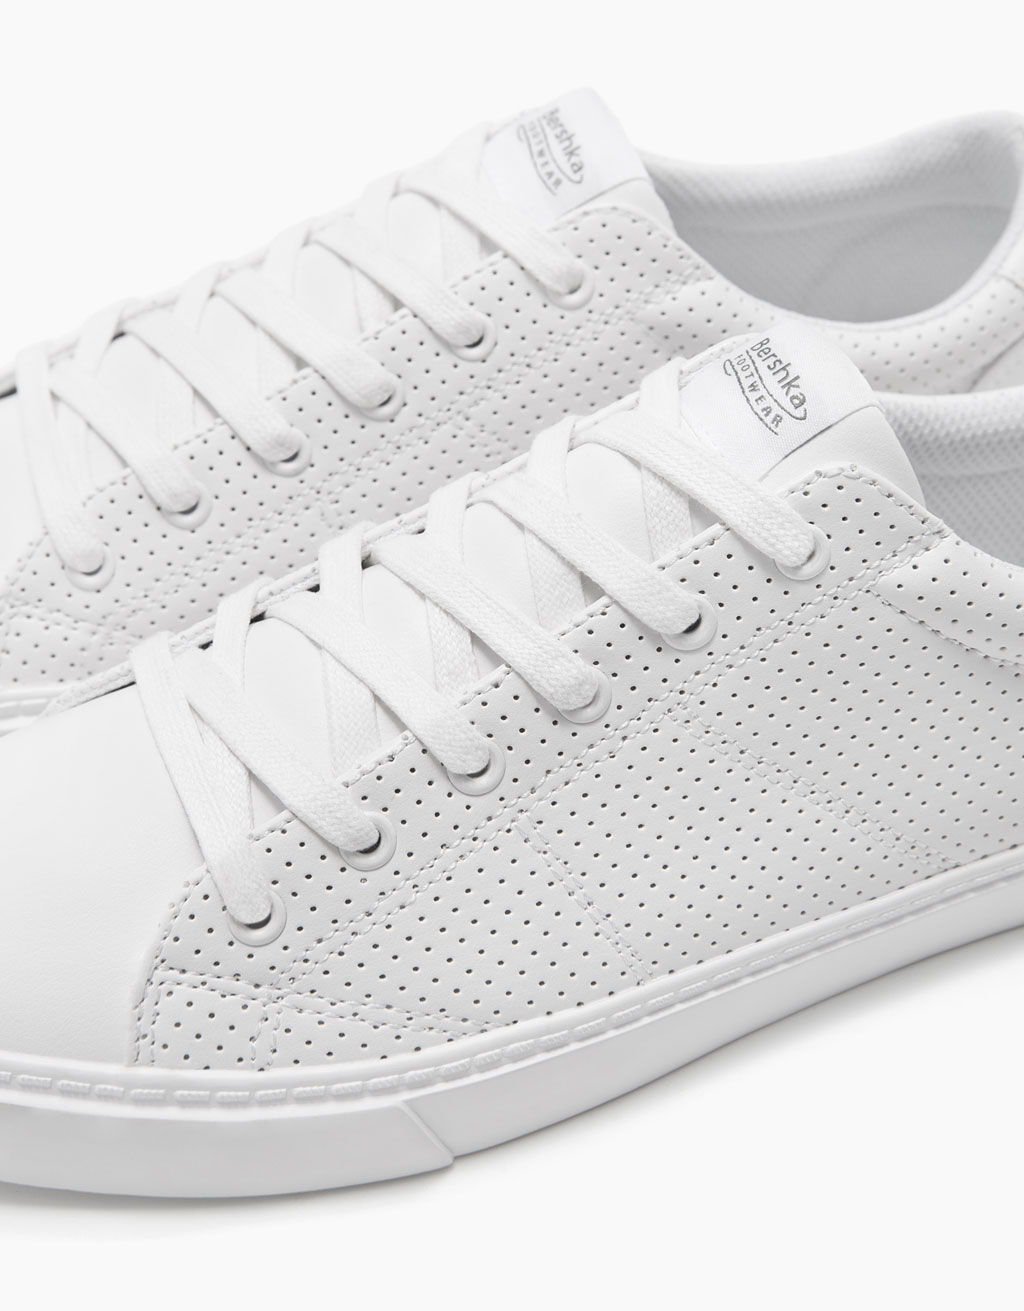 Men's perforated sneakers